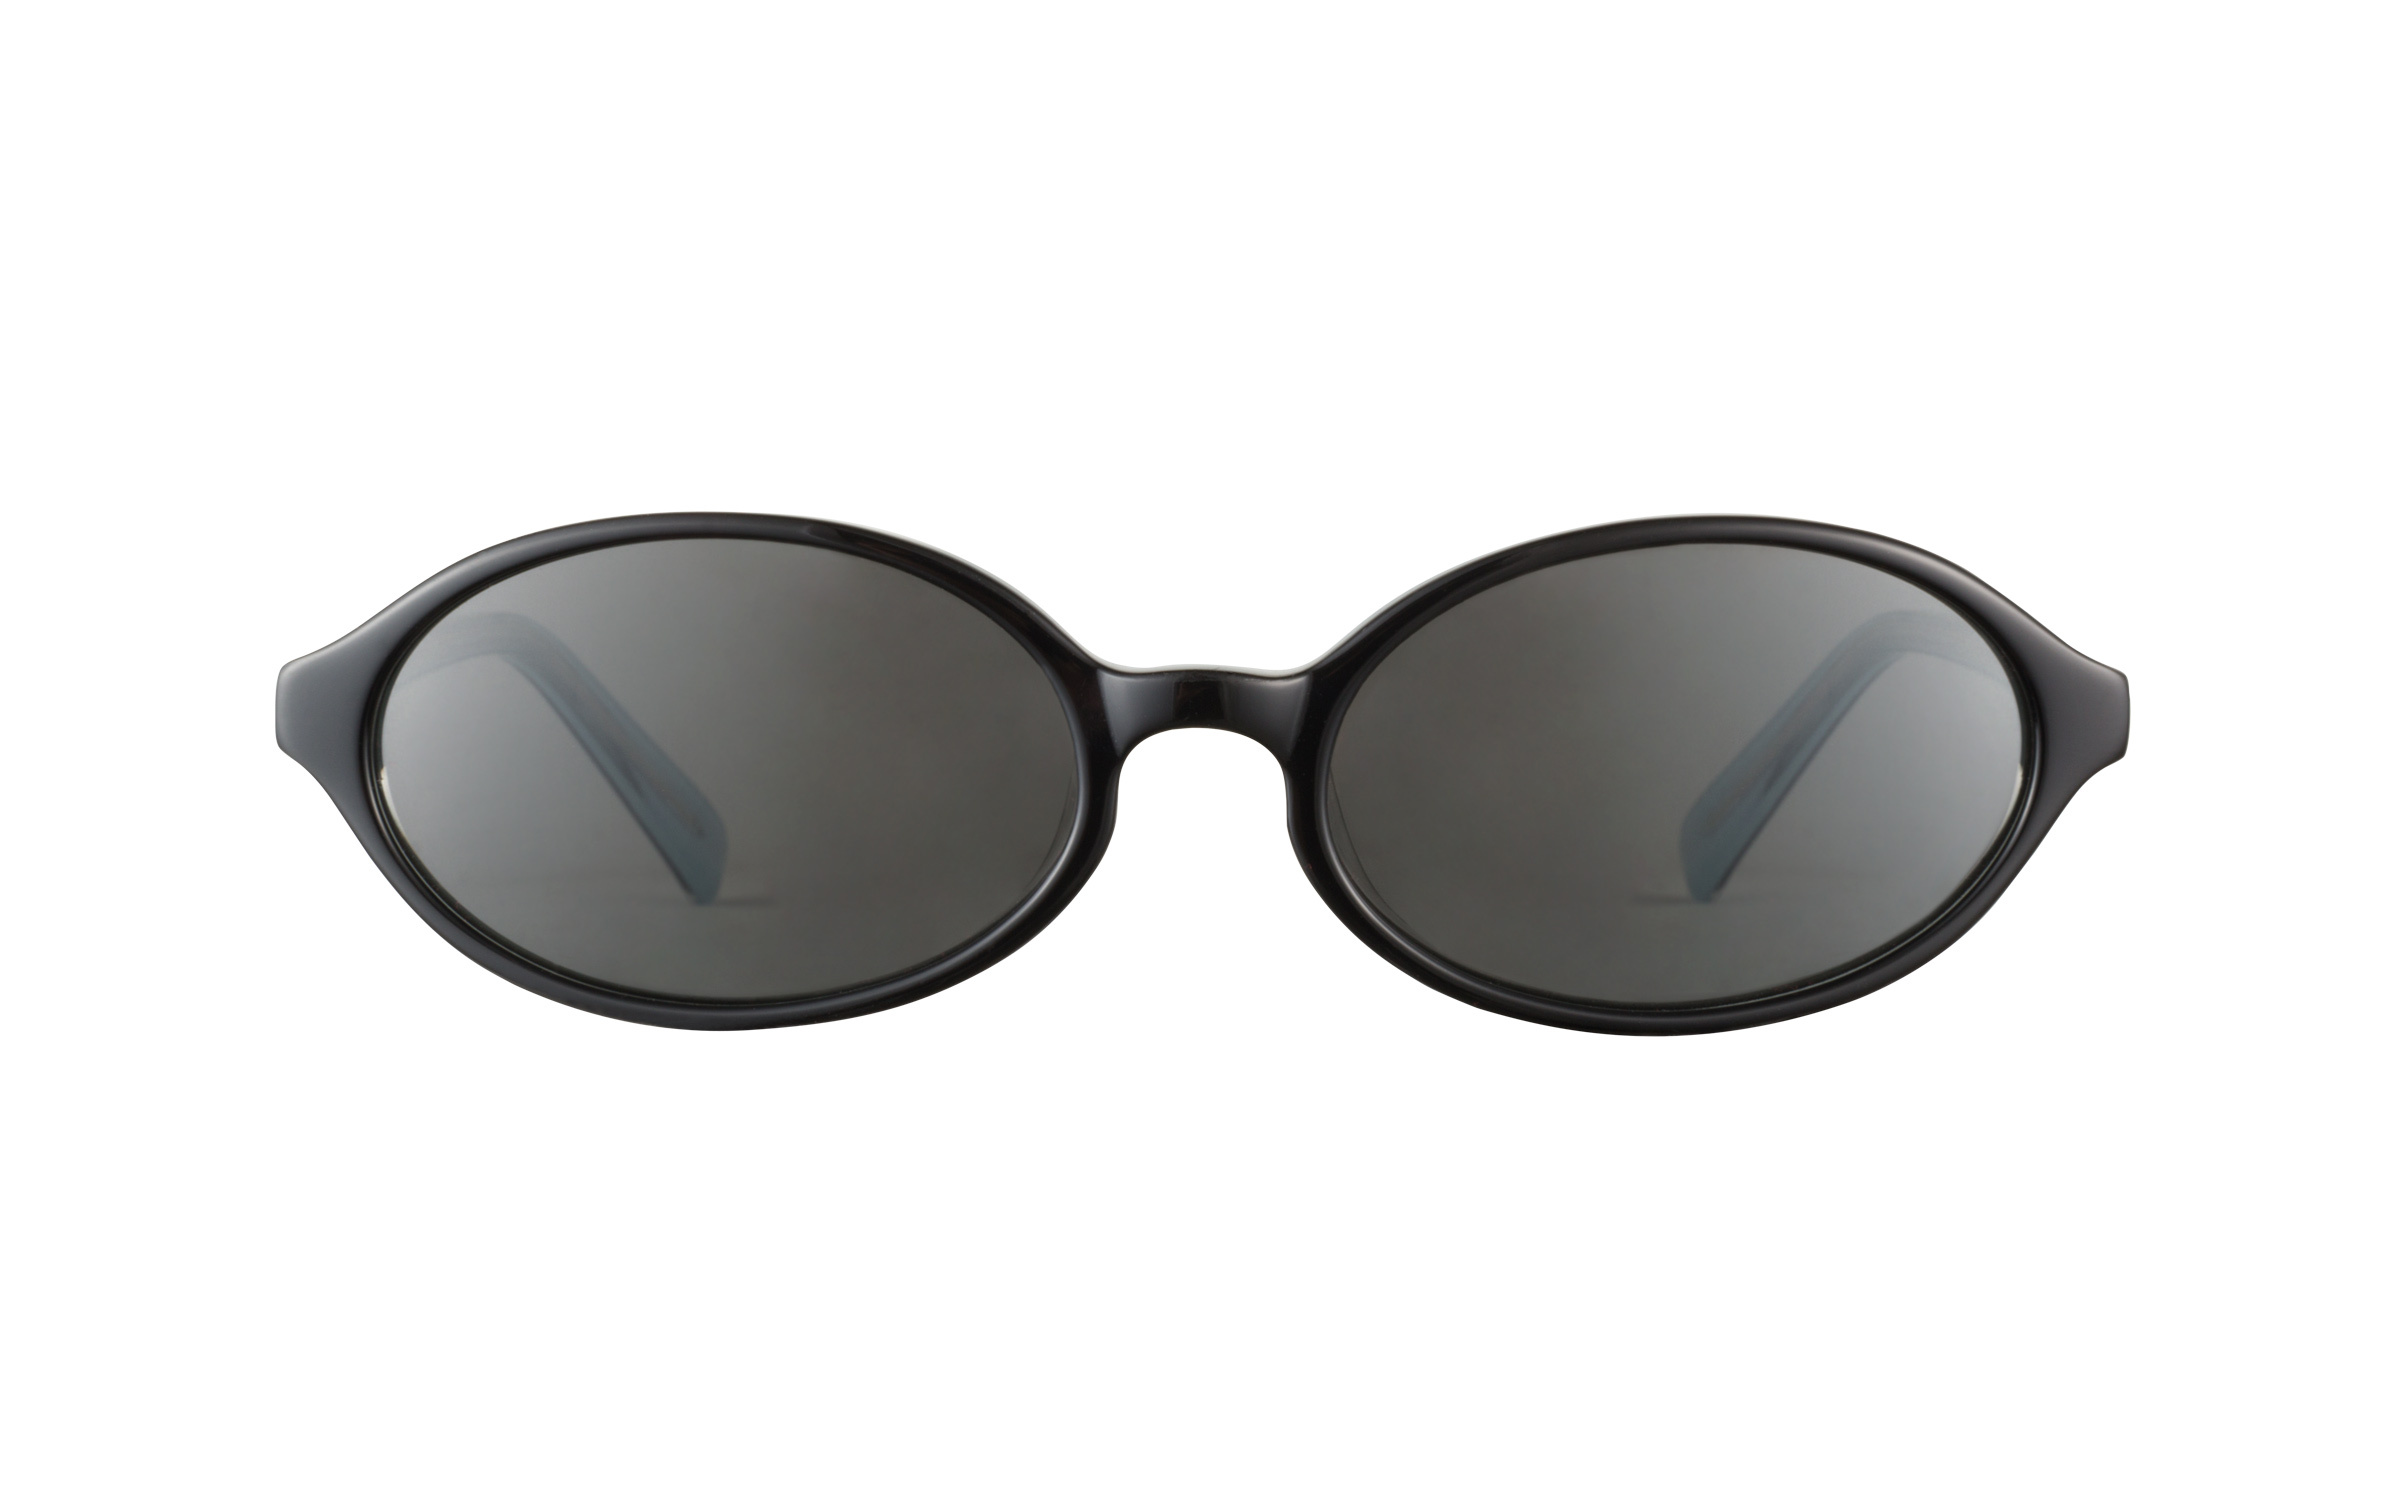 Zooventure_Kids_Sunglasses_Black_Sunglasses__Clearly_Glasses_Online